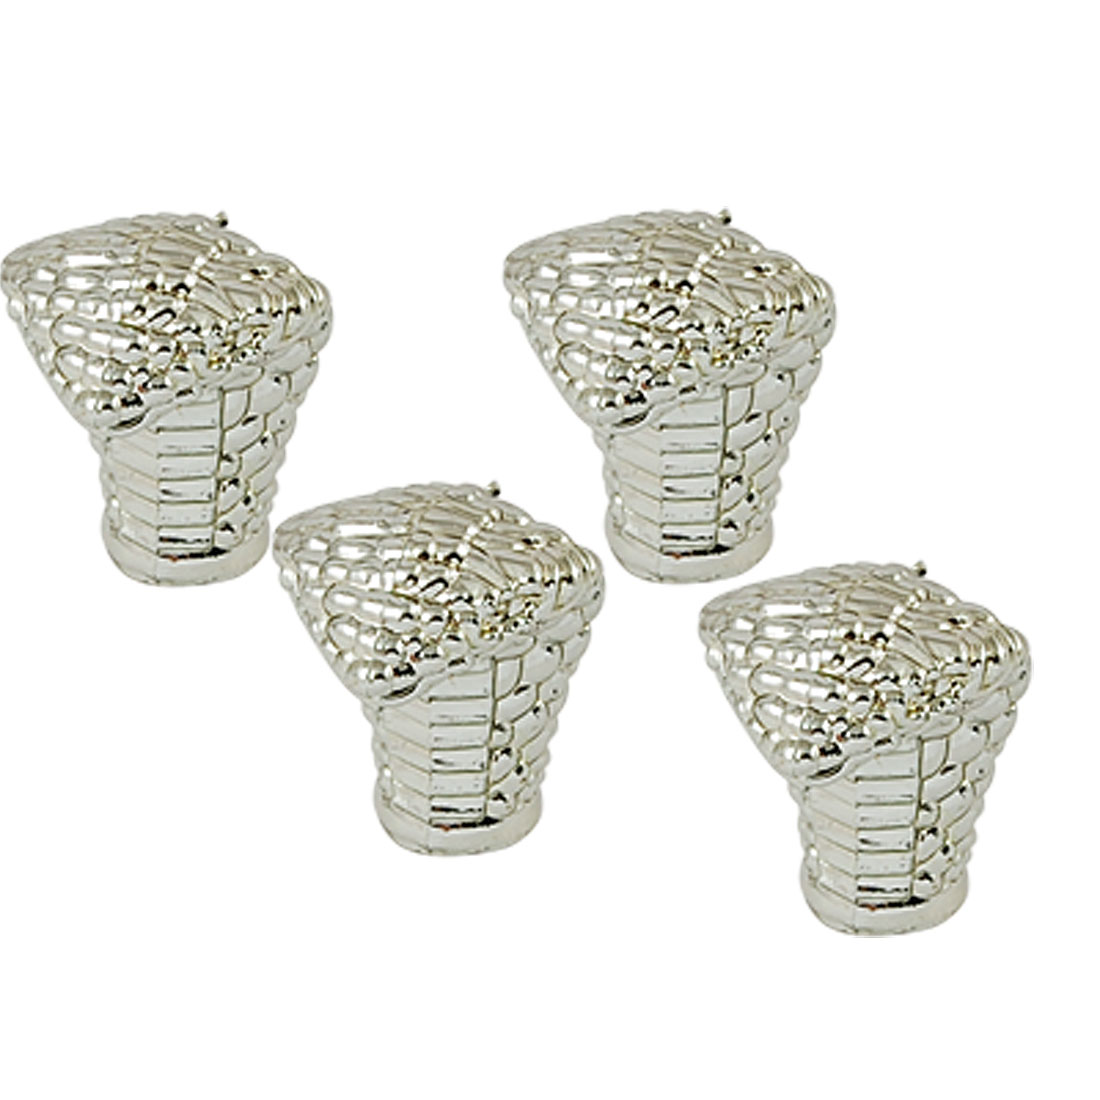 Car Auto Silver Tone Tyre Tire Valve Snake Caps Covers 4 Pcs